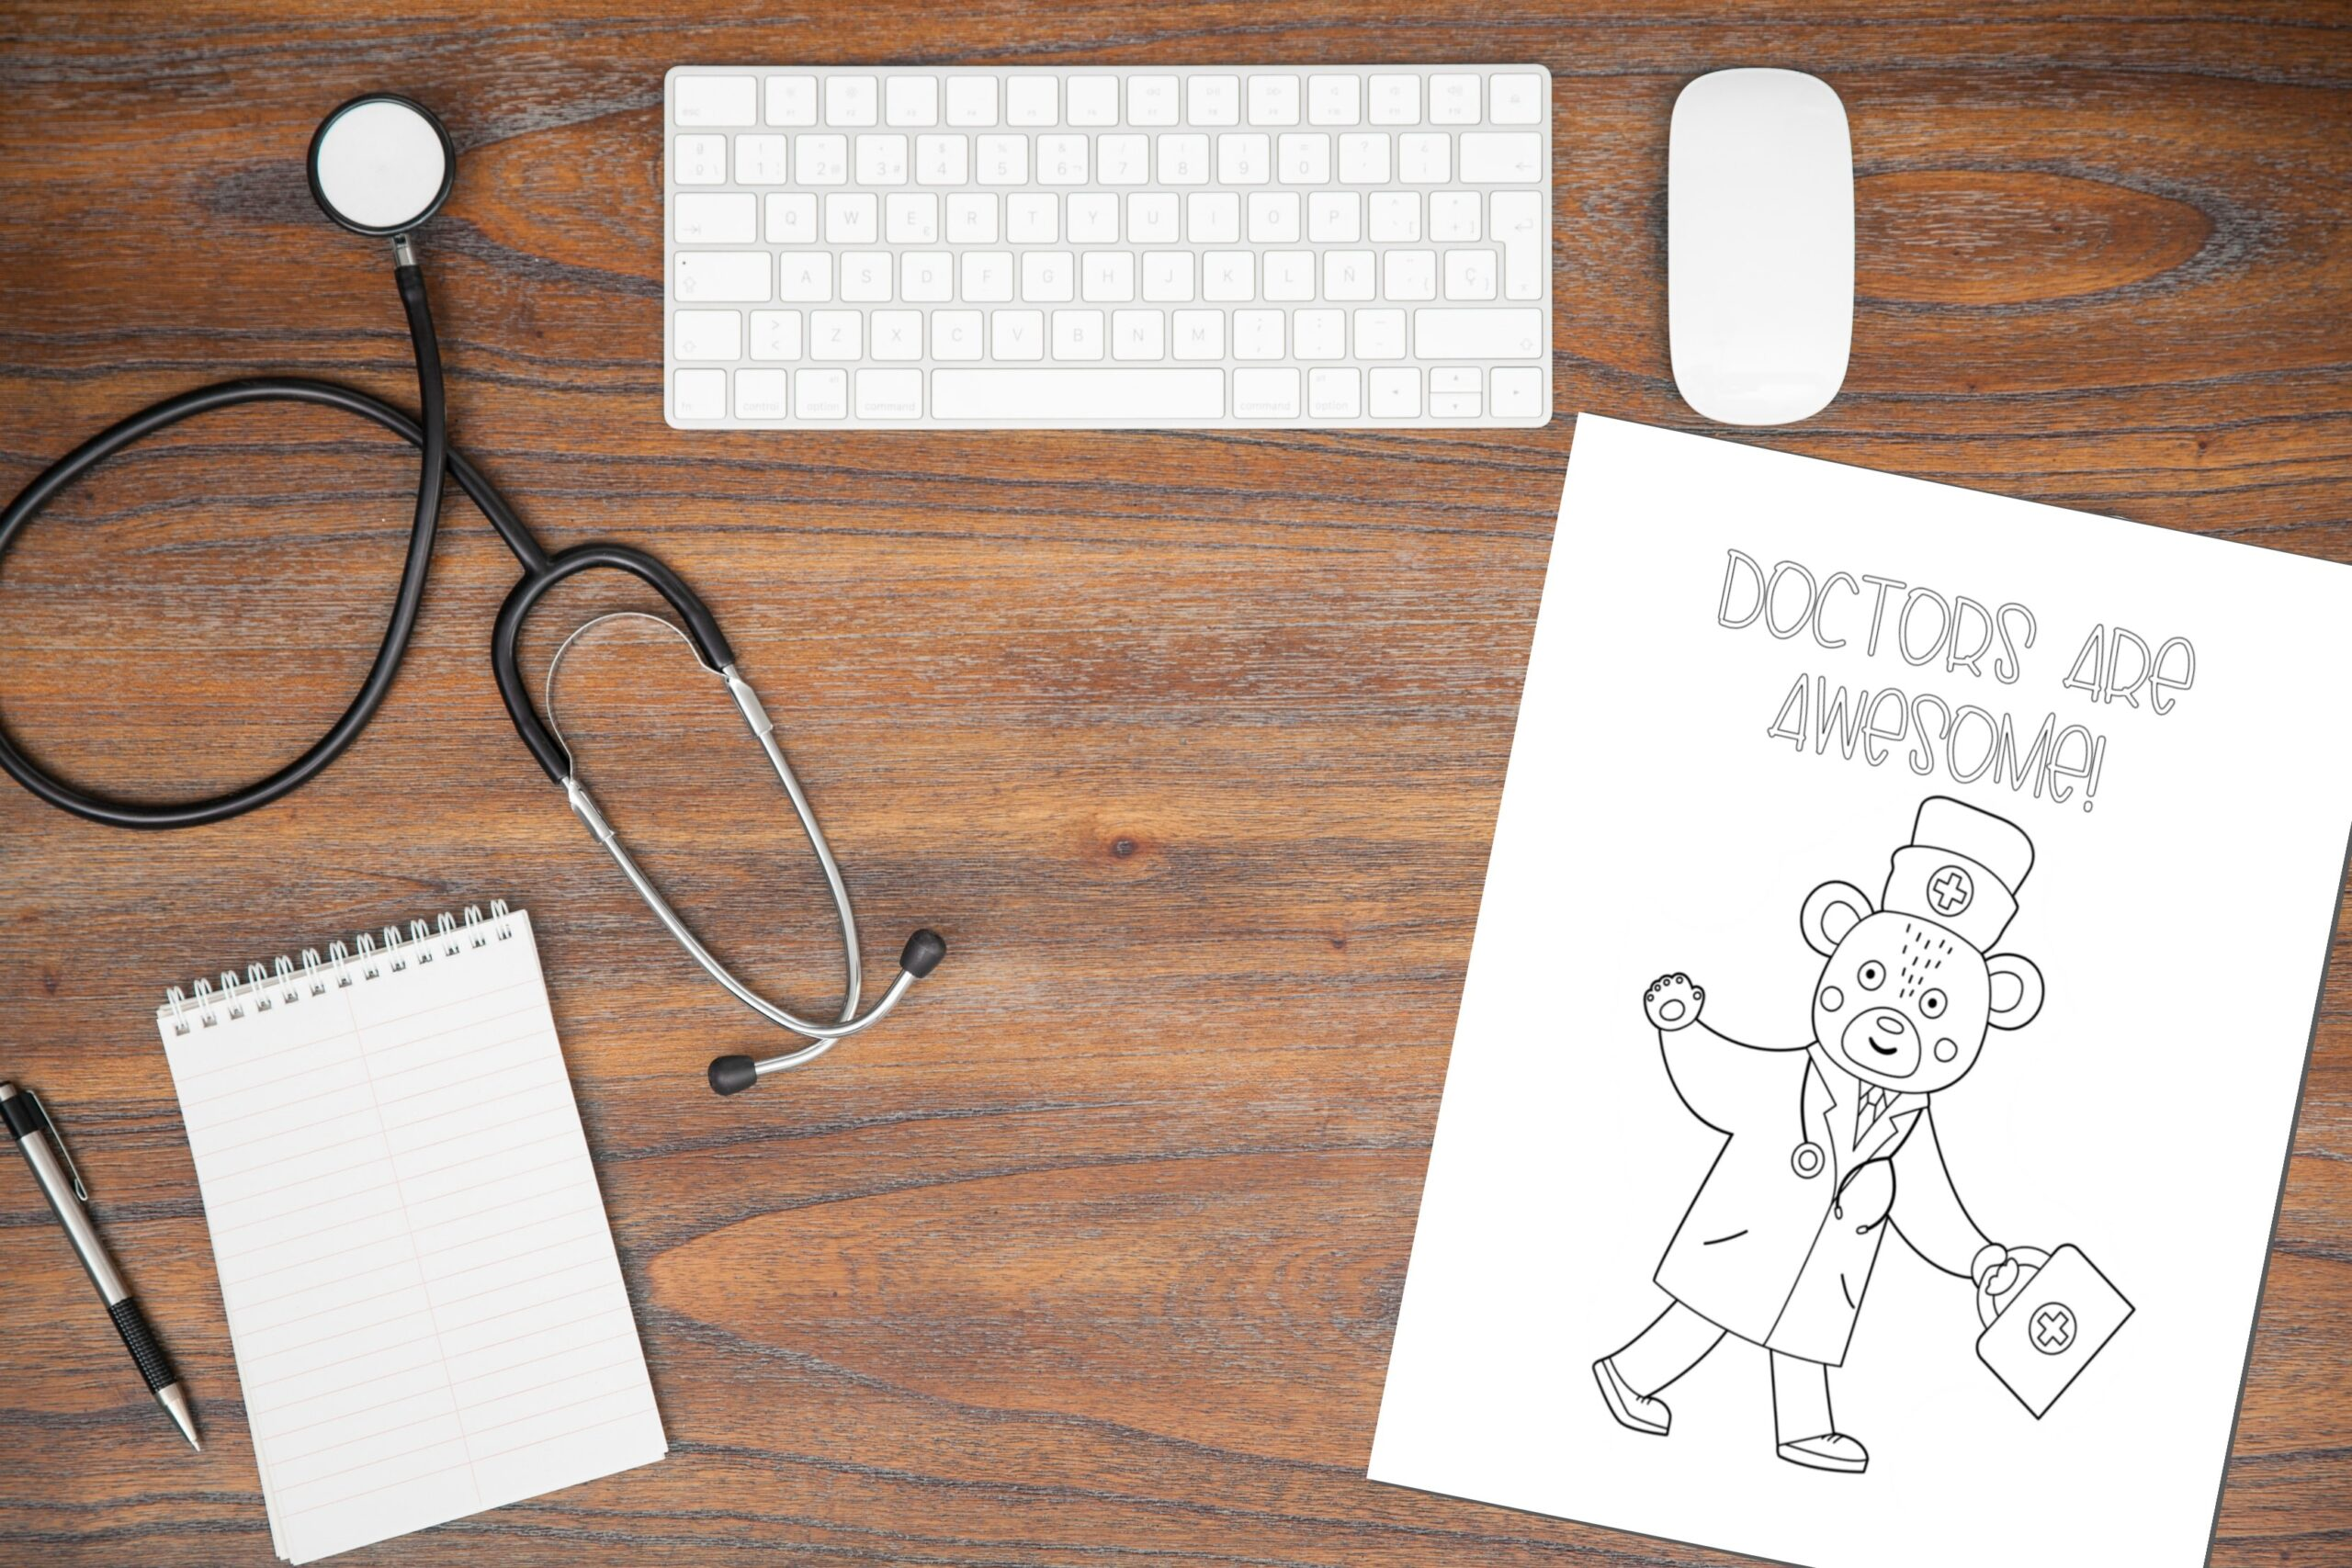 Celebrate Doctor S Day With These Doctor Coloring Pages Fun Happy Home